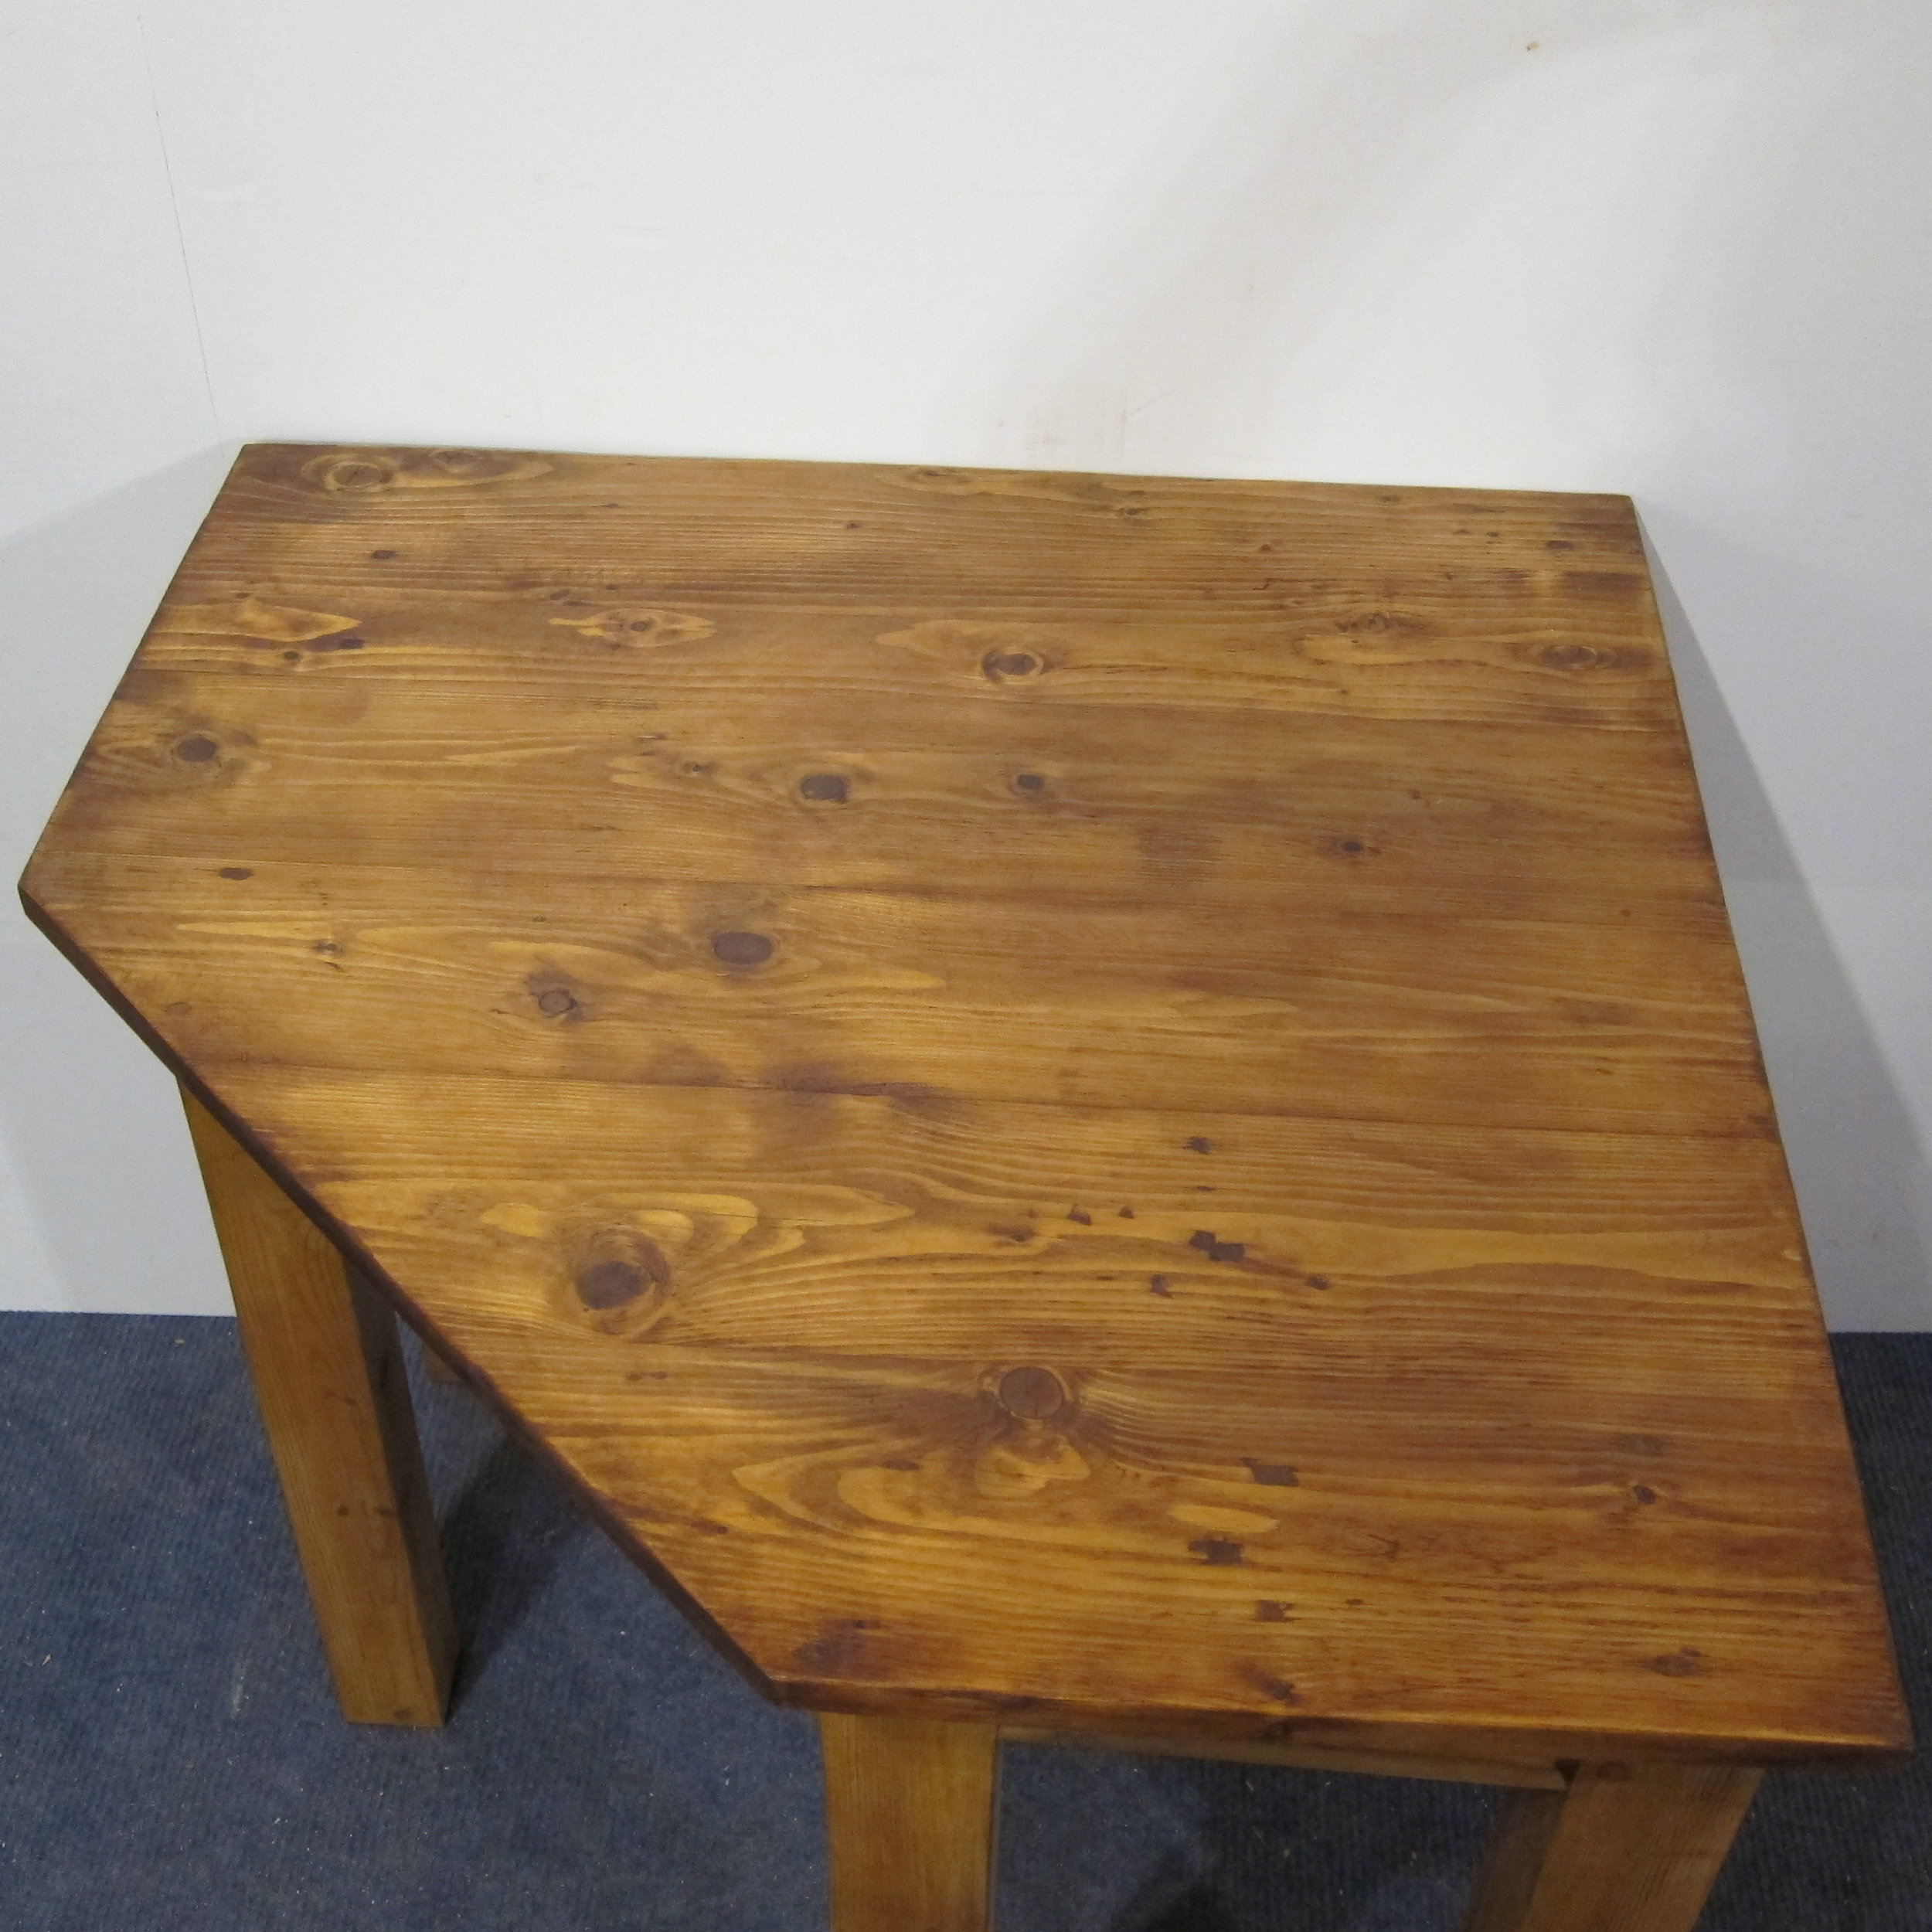 Small table made from old pine floorboards